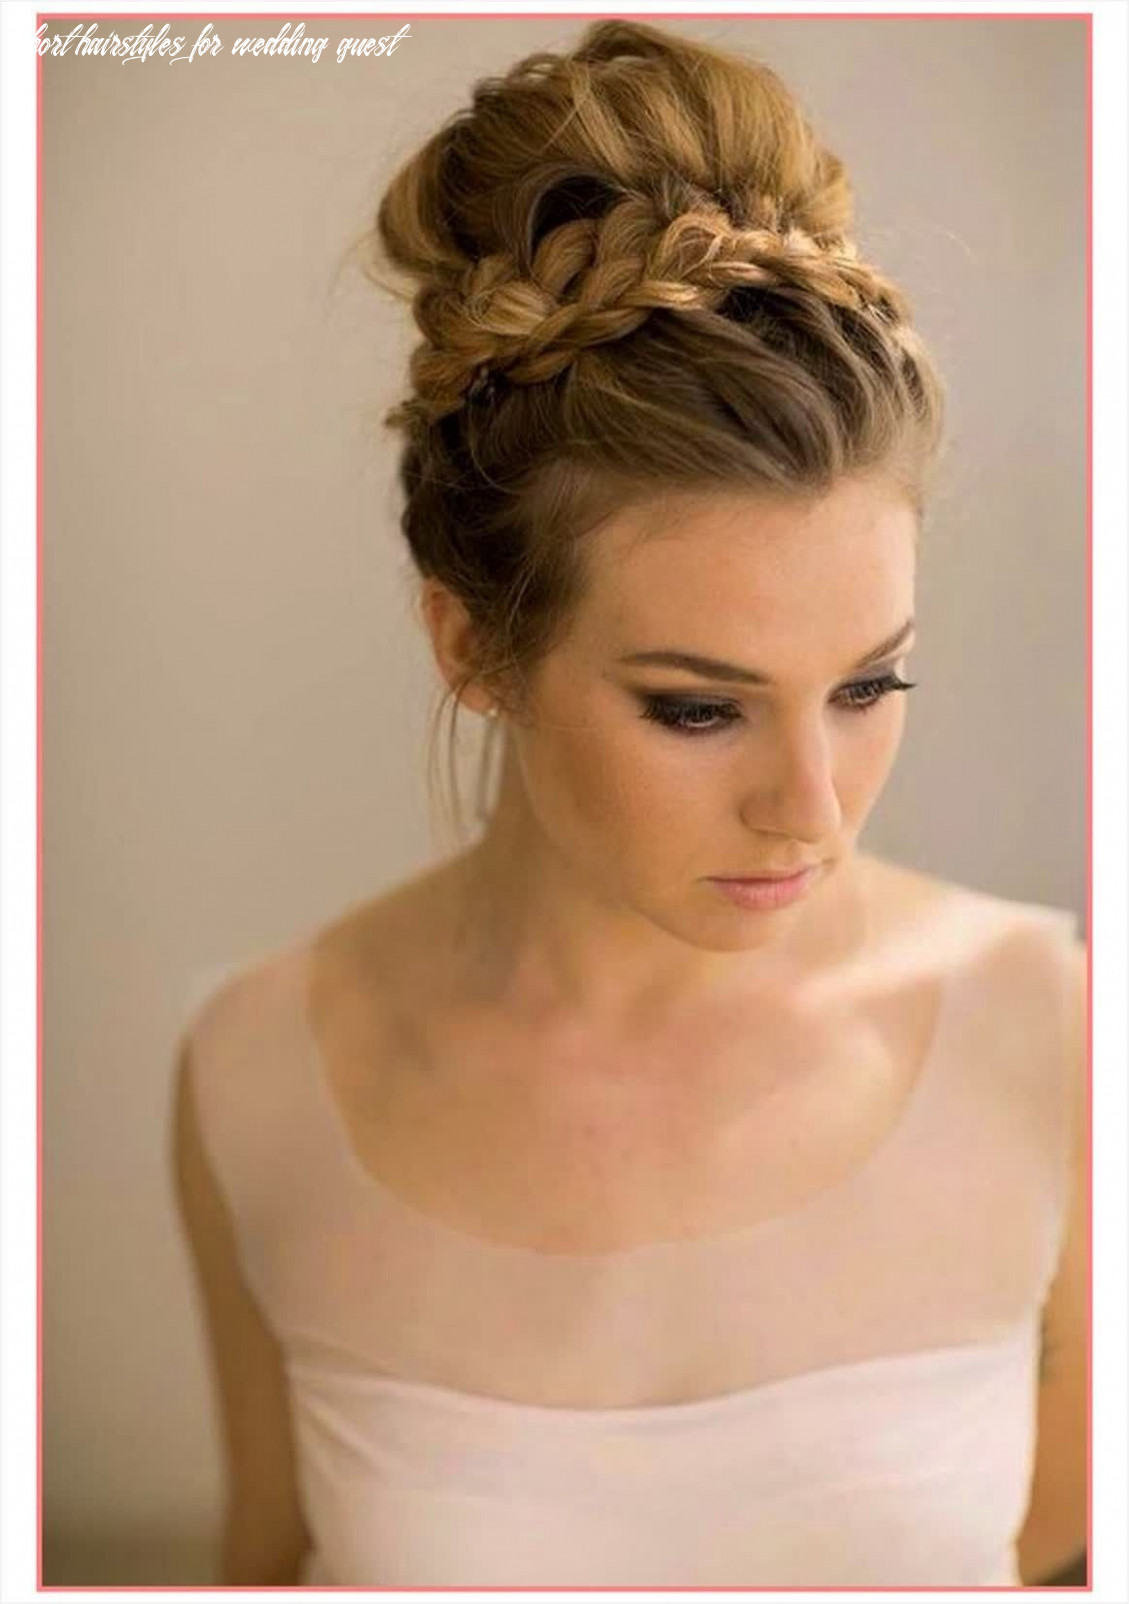 9 cute hairstyles for wedding guests 9 best wedding guest